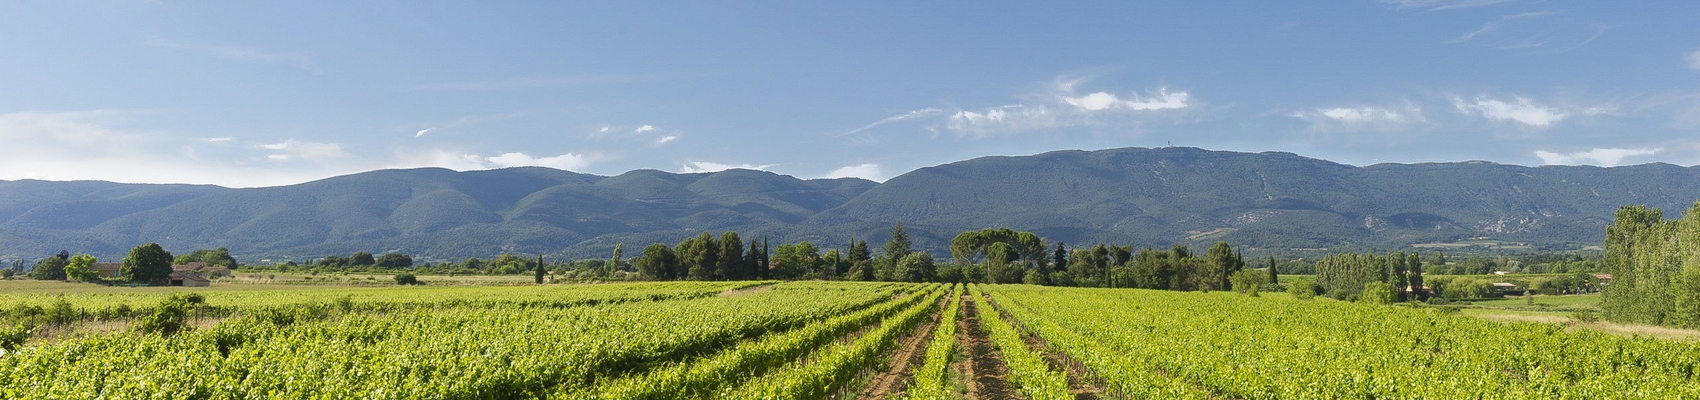 Luberon Vineyards